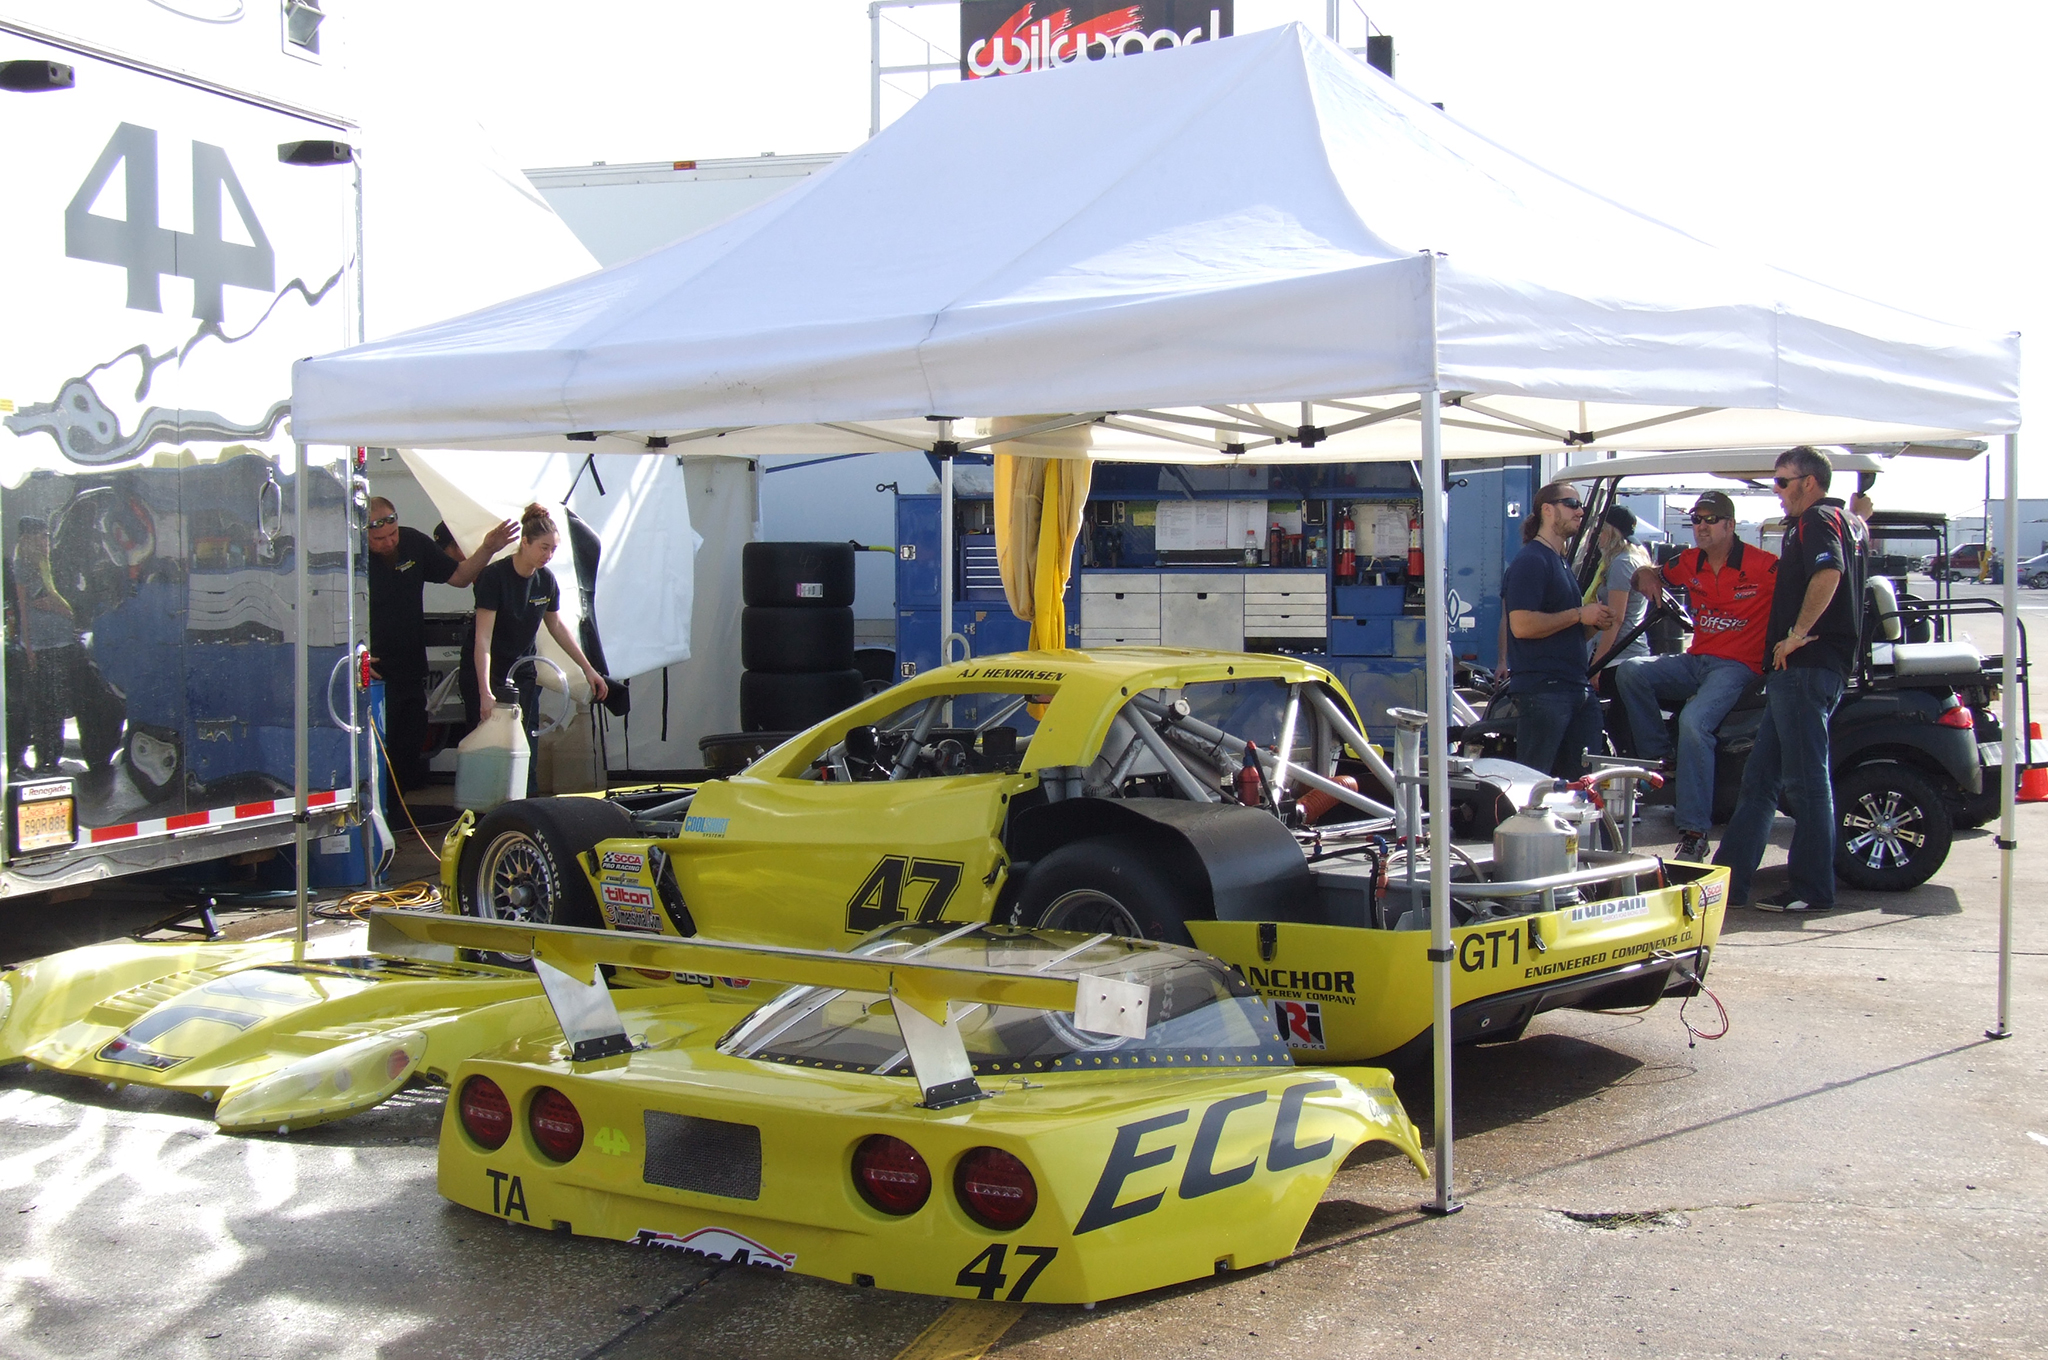 There's a lot to see in the pits, from internal details of race cars to vendors, such as Heacock Classic Car Insurance.